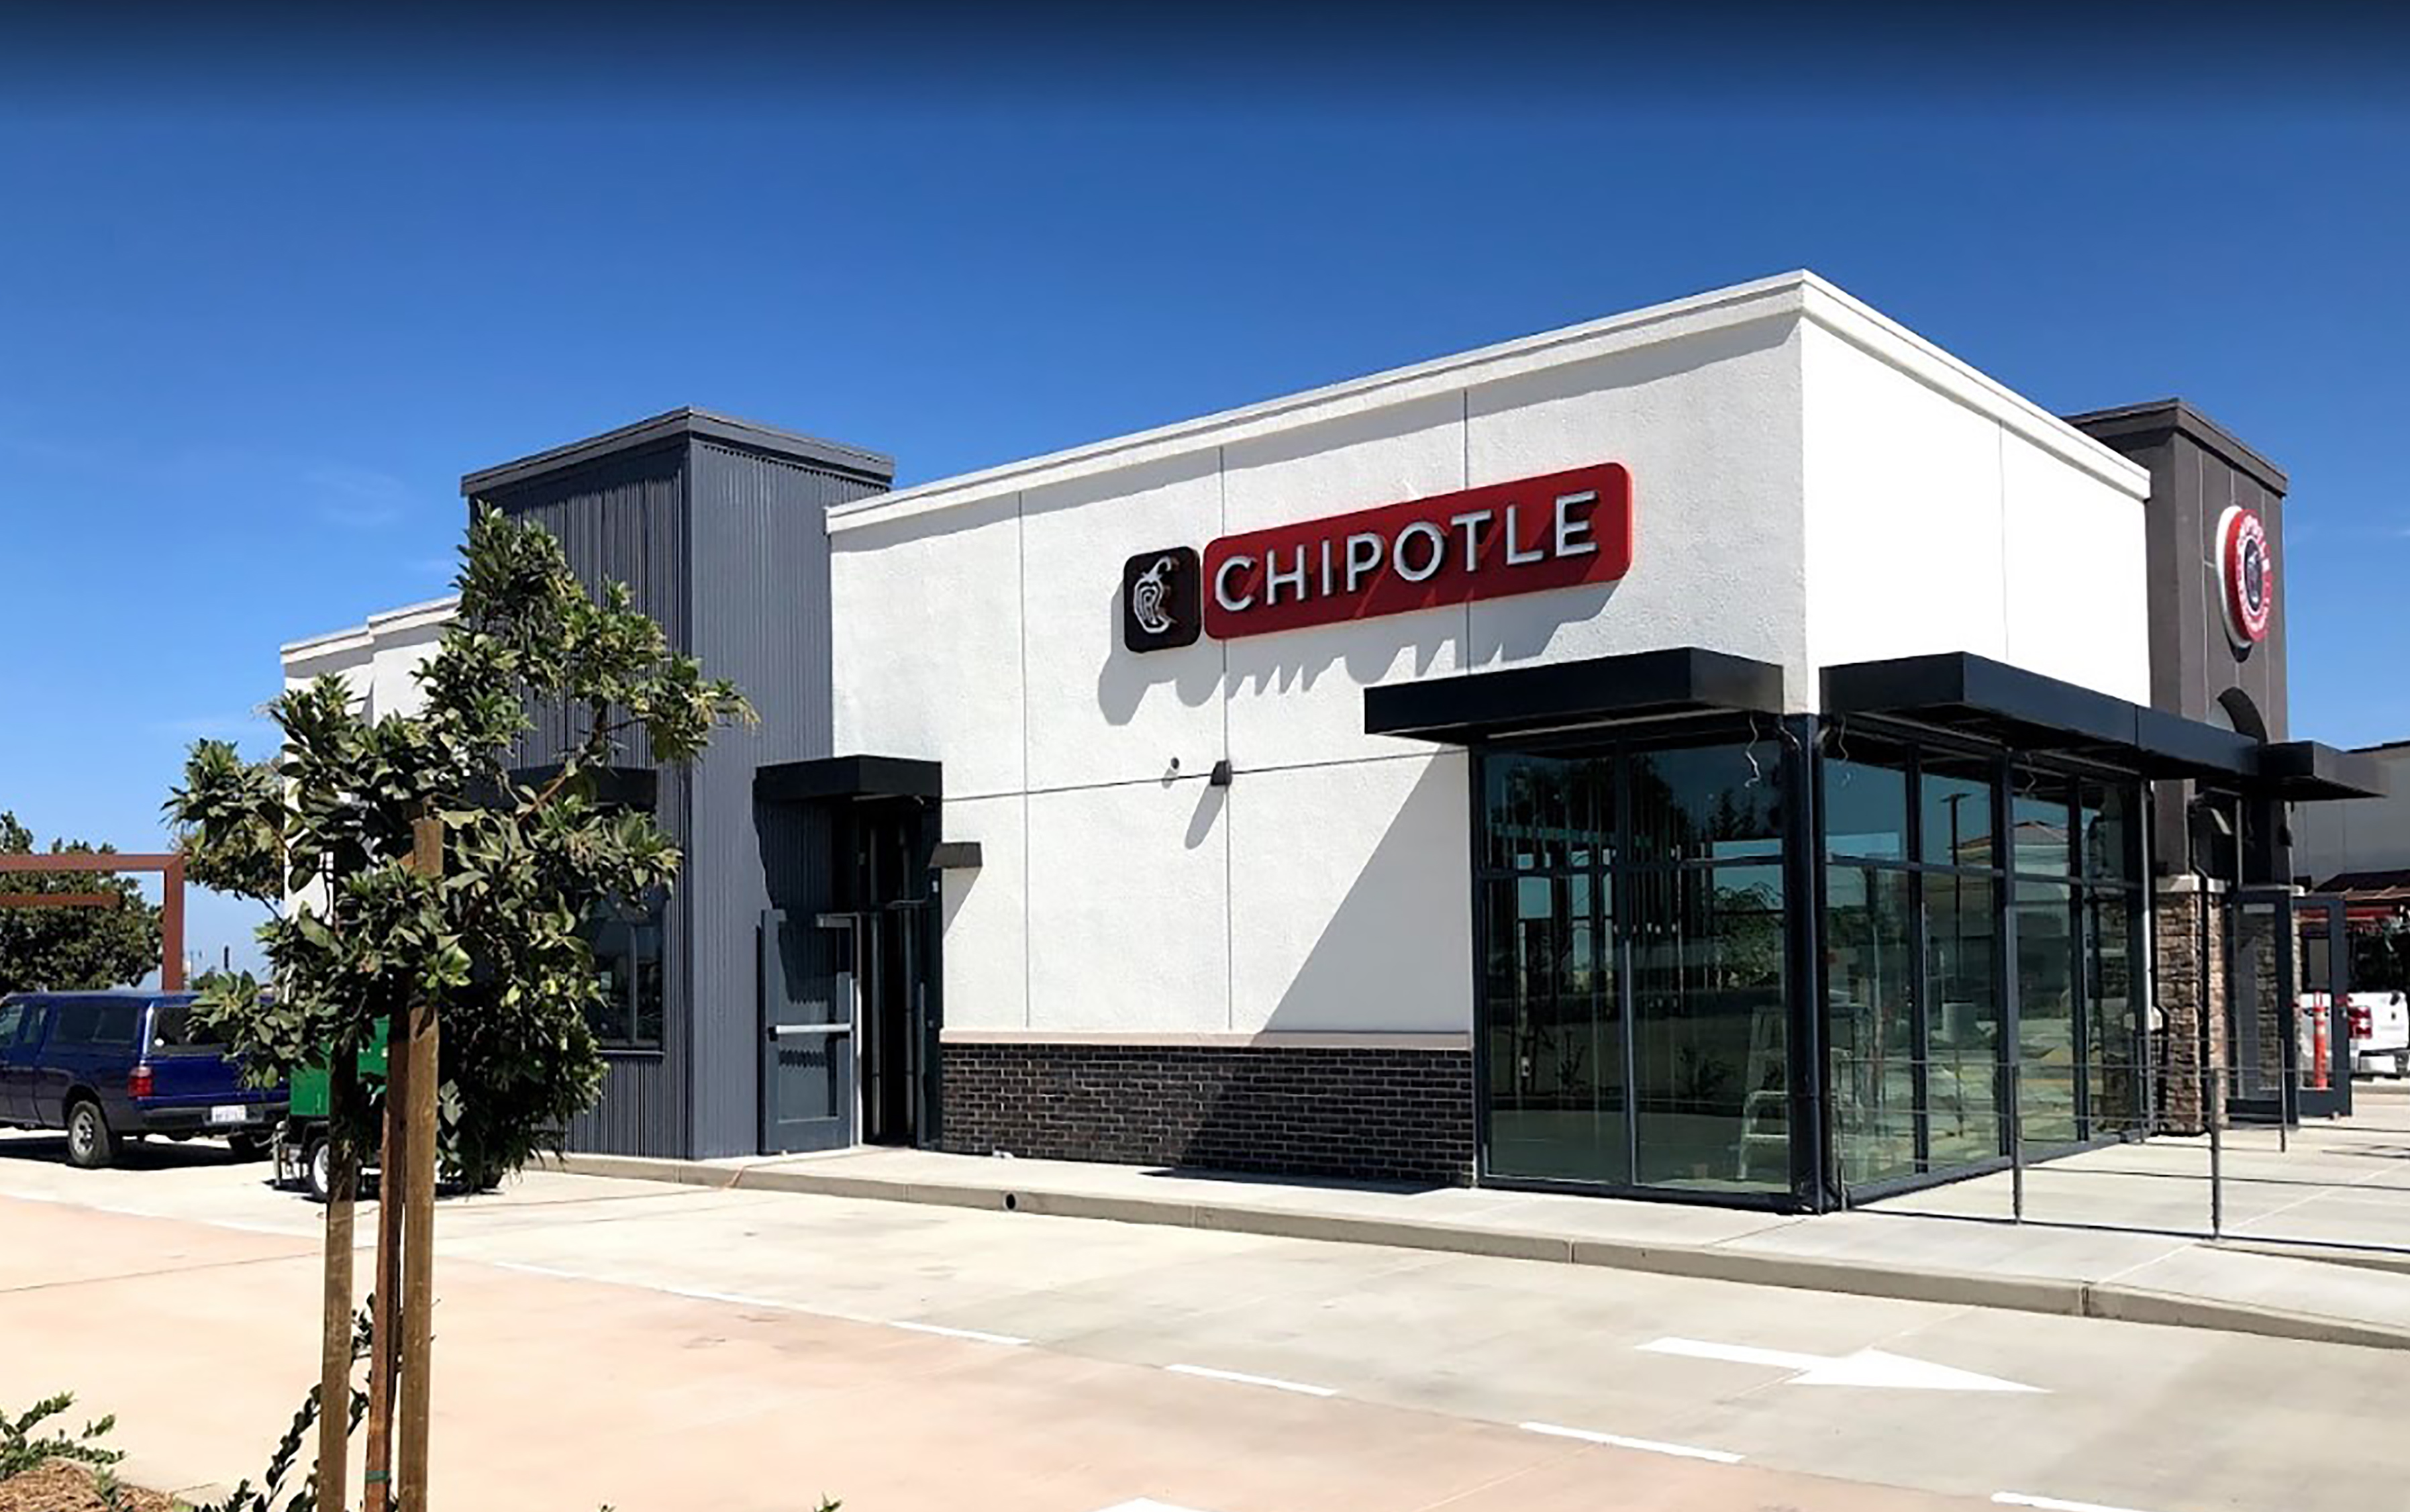 Hanley Investment Group Arranges Sale of New Single-Tenant Chipotle for $3,185,000 in San Joaquin County, Calif.